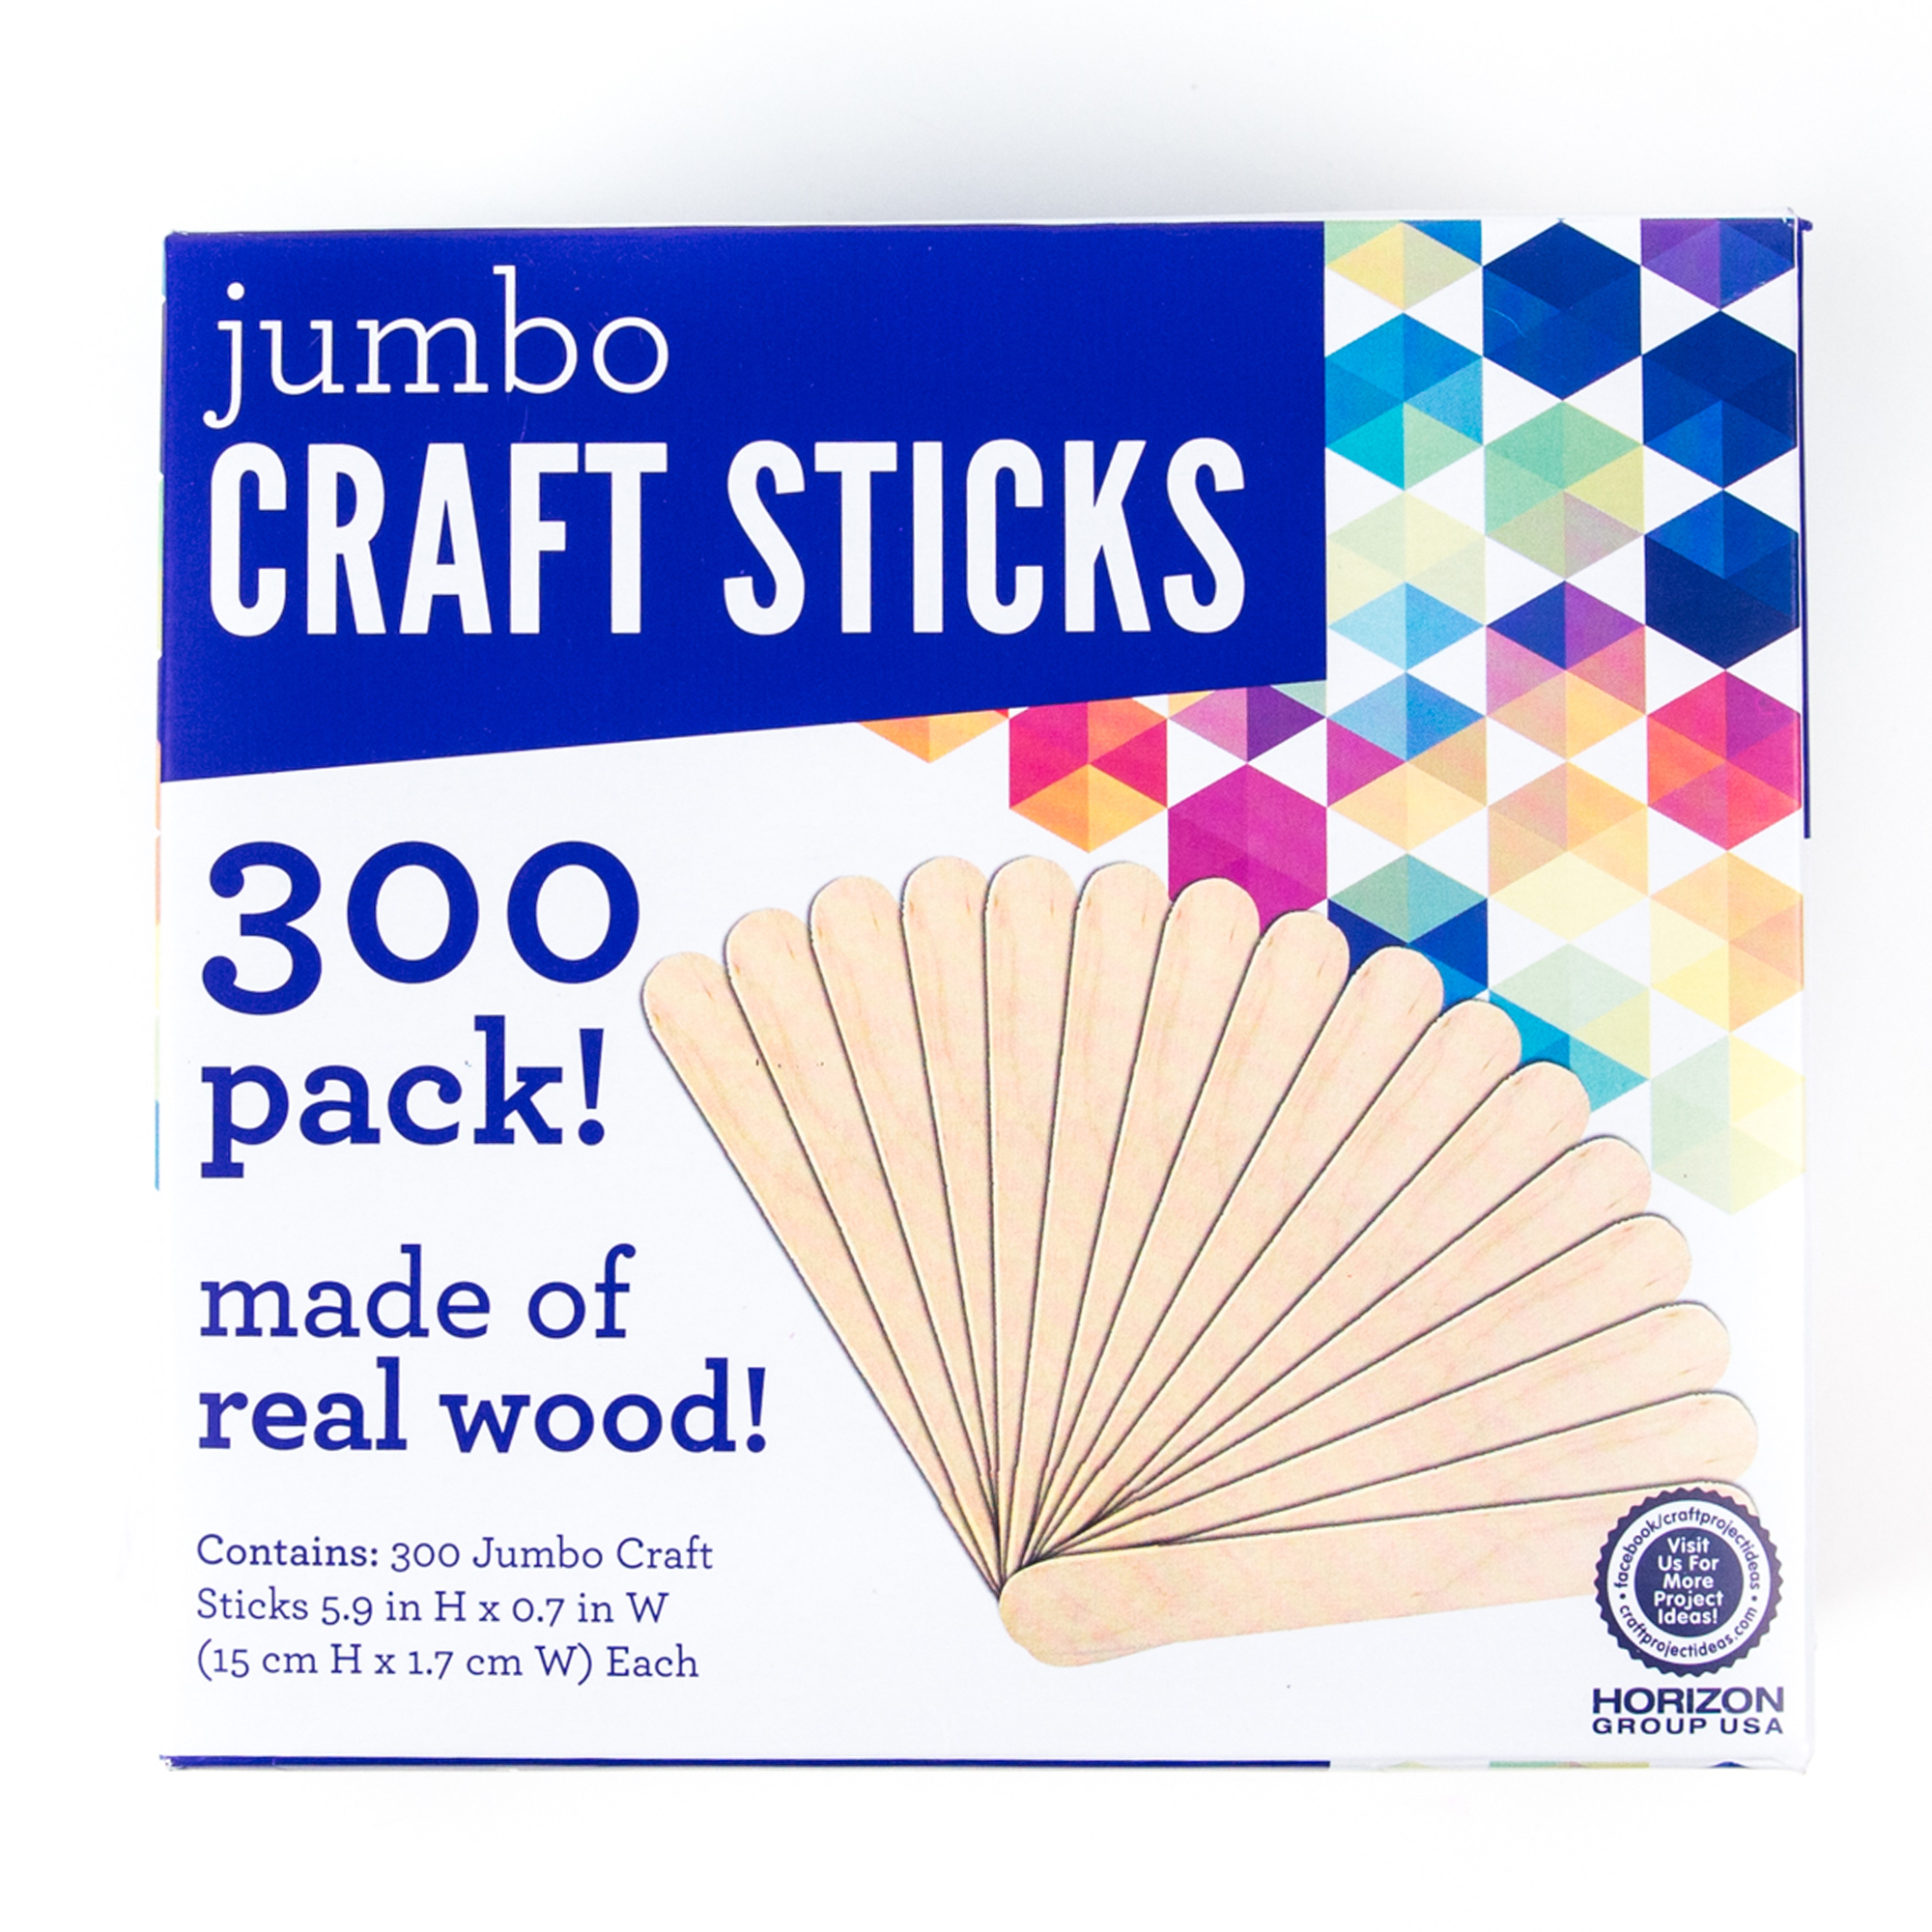 Jumbo Craft Sticks, 300pk by Horizon Group USA